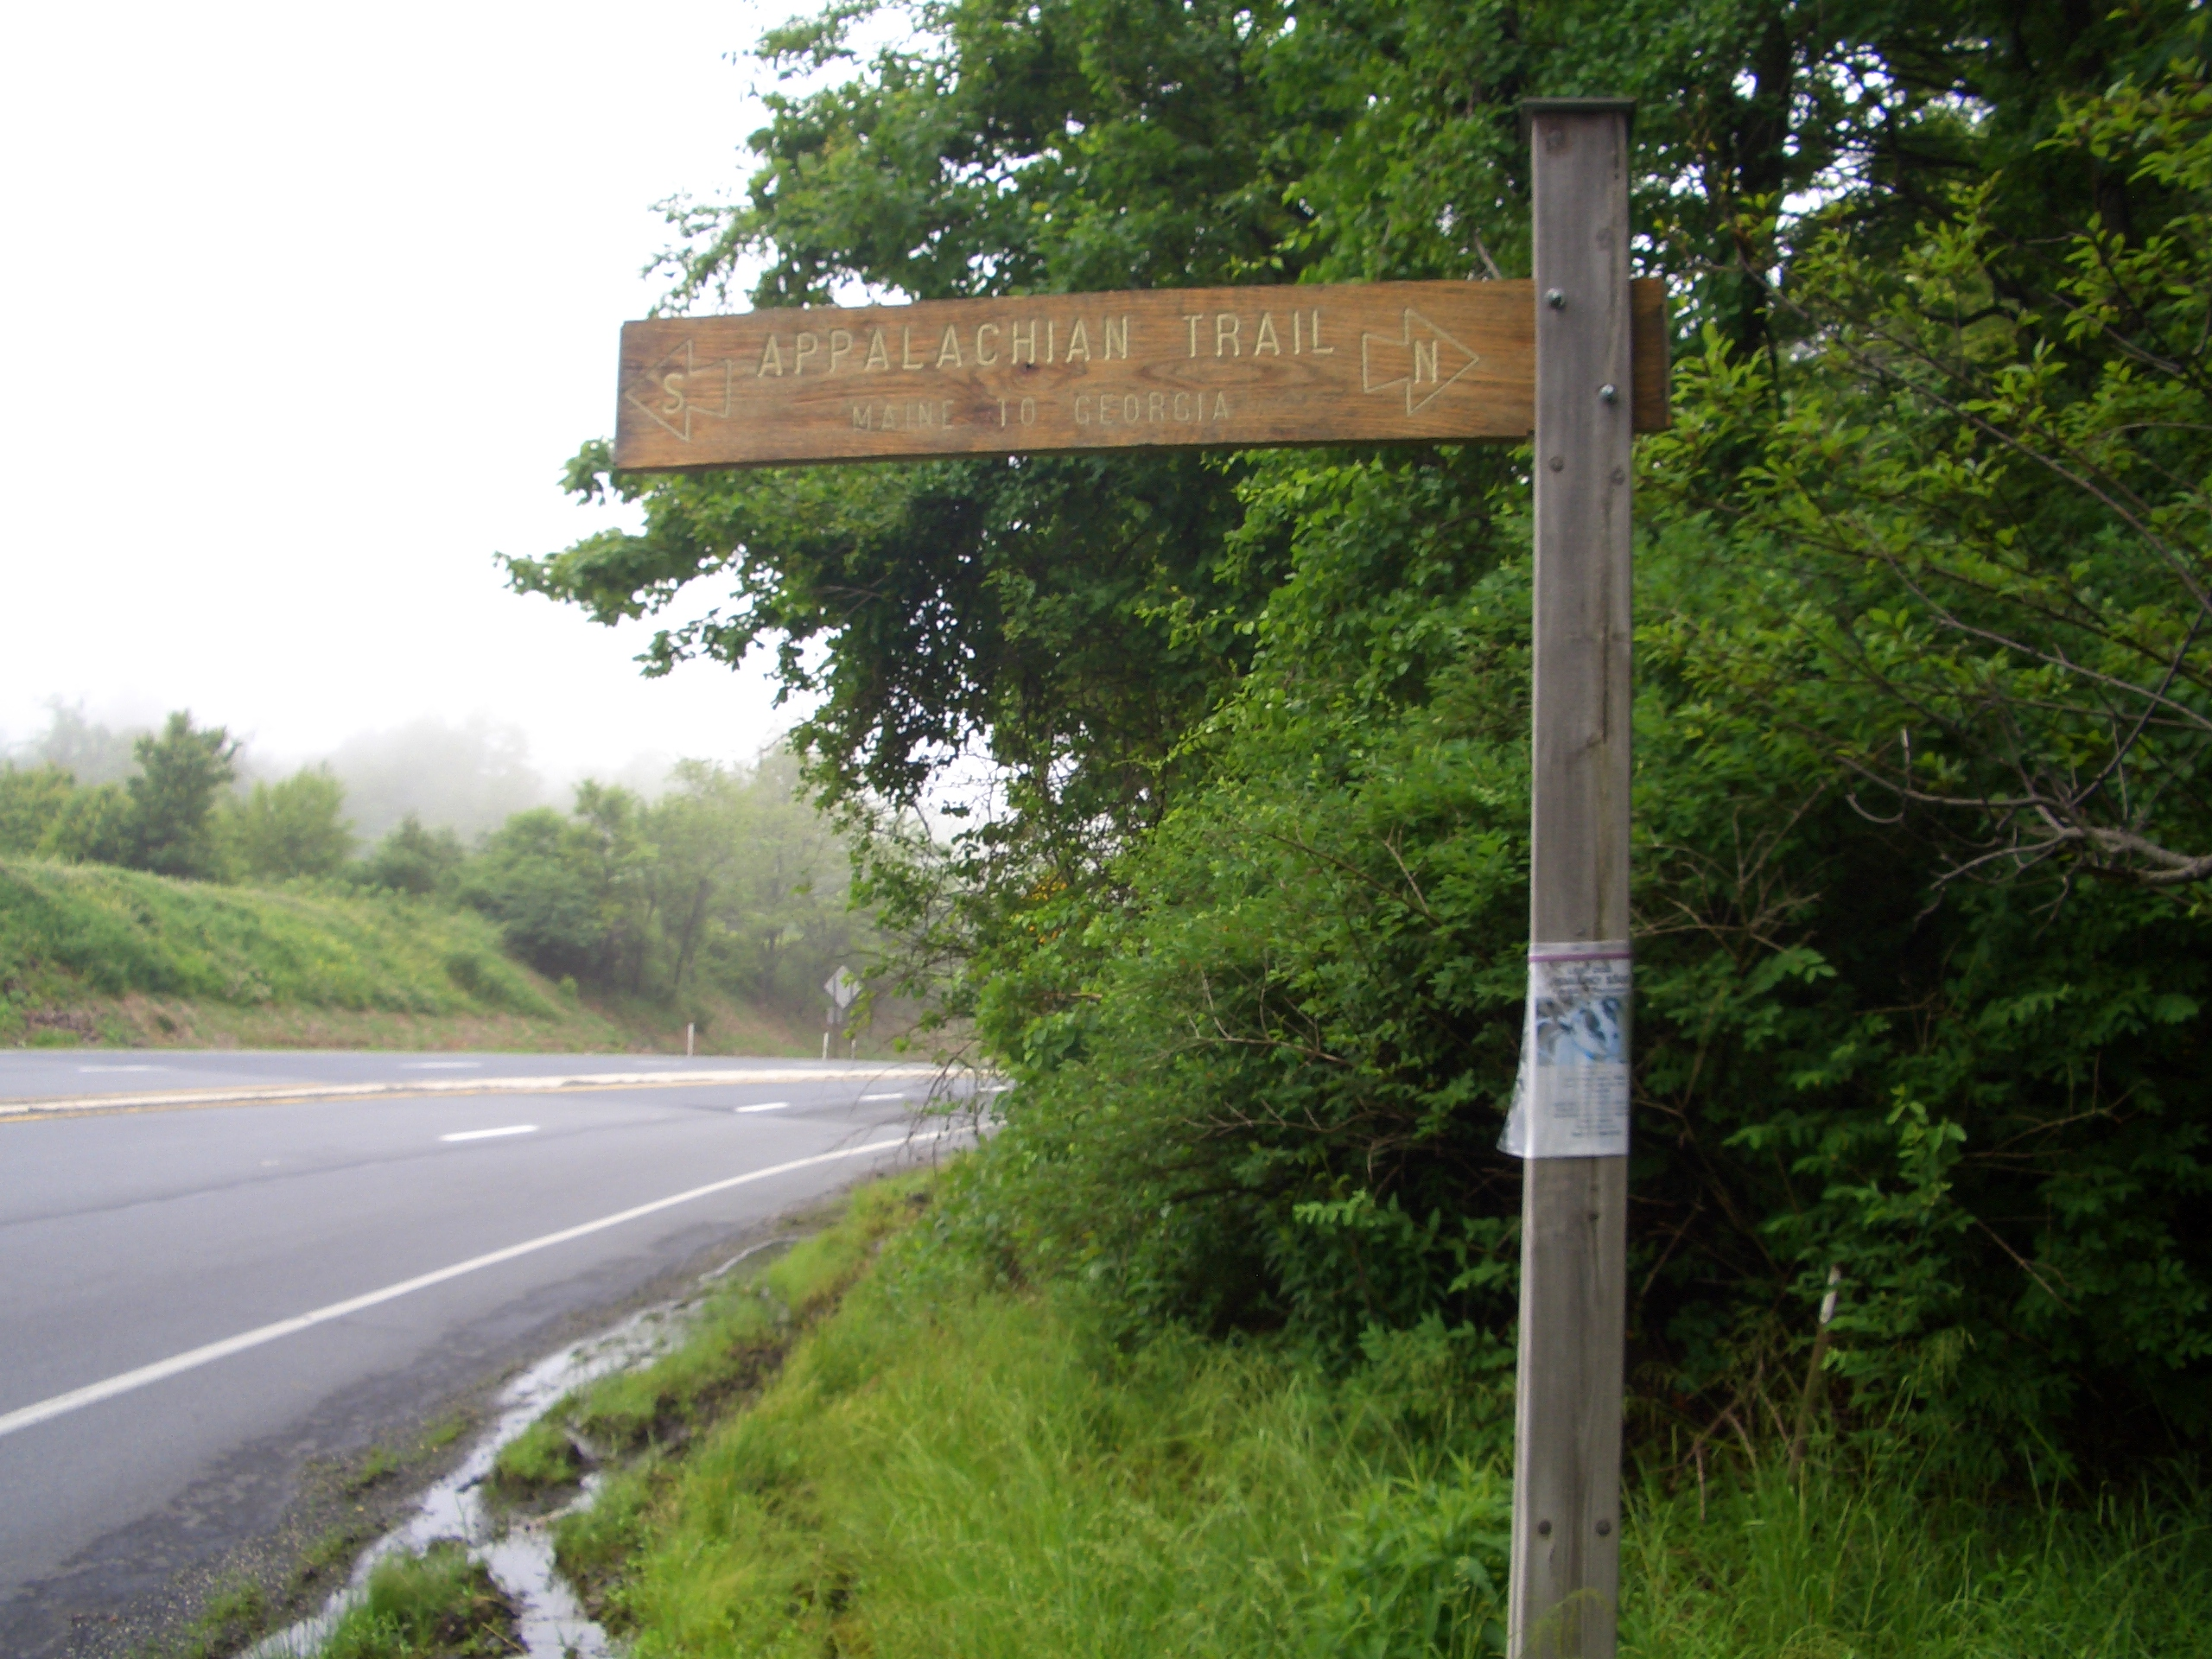 Appalachian Trail Sign. Photo by sk/Flickr.